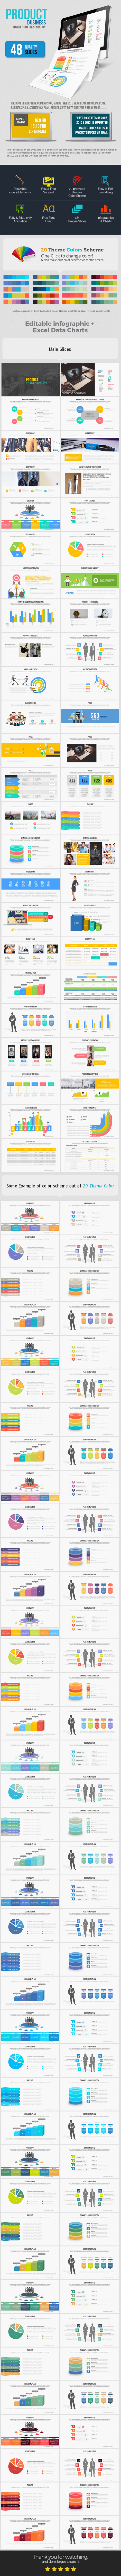 Product Power Point Presentation - Business PowerPoint Templates